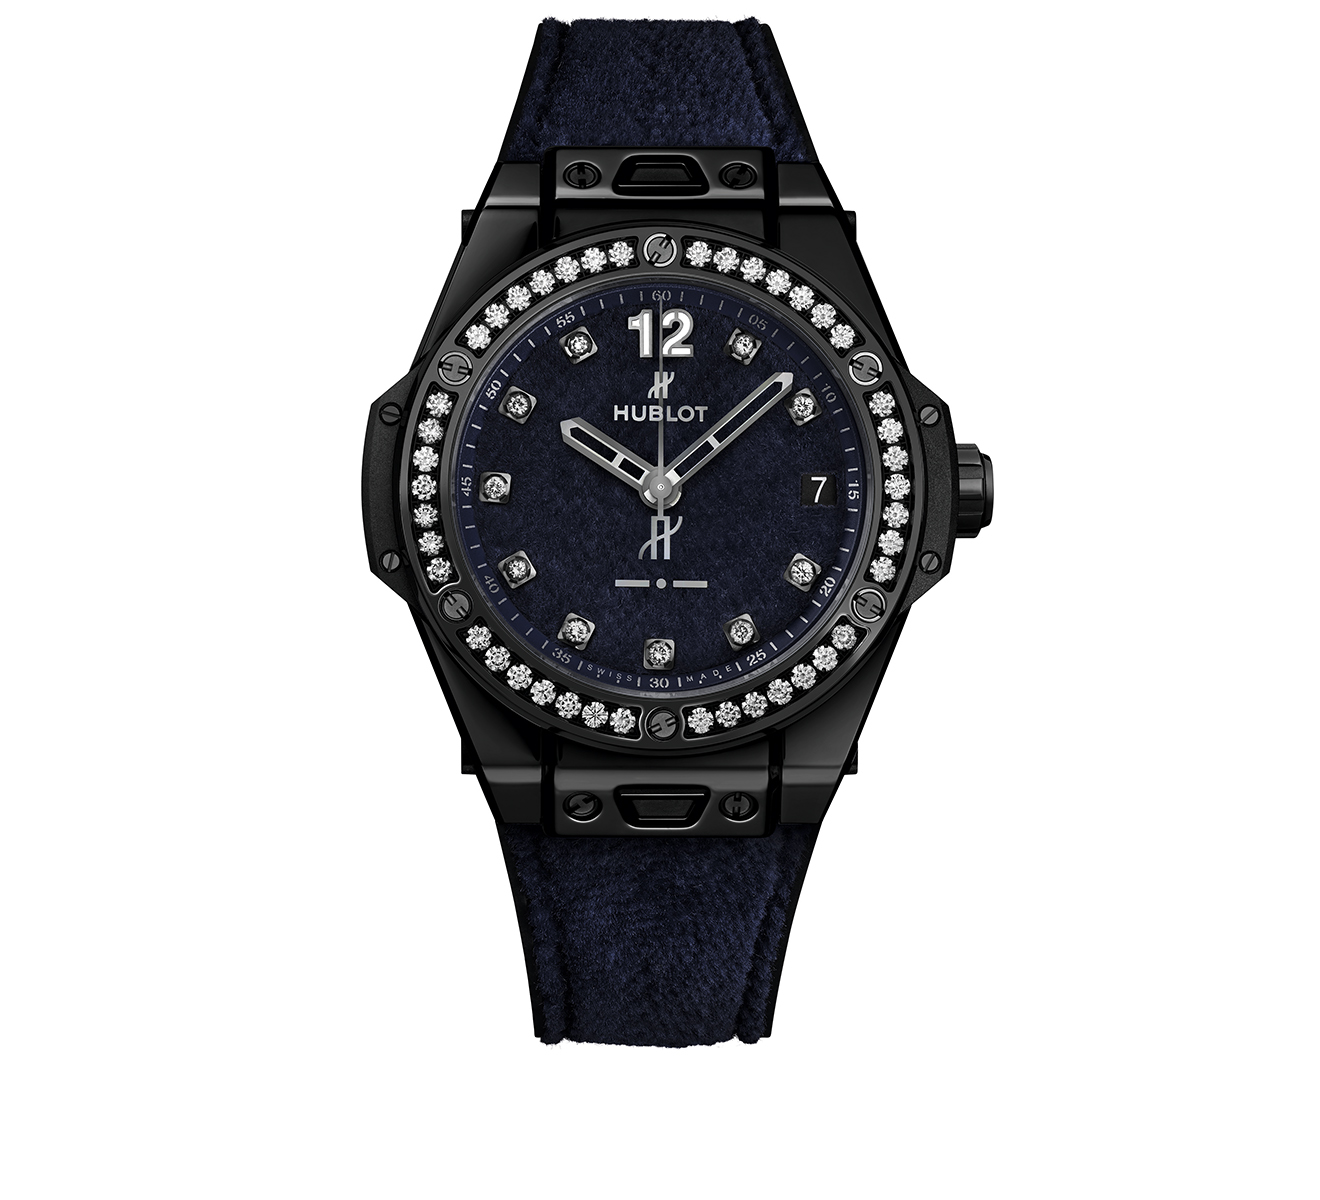 Часы One Click Italia Independent Dark Blue Velvet HUBLOT Big Bang 465.CS.277J.NR.1204.ITI17 - фото 1 – Mercury